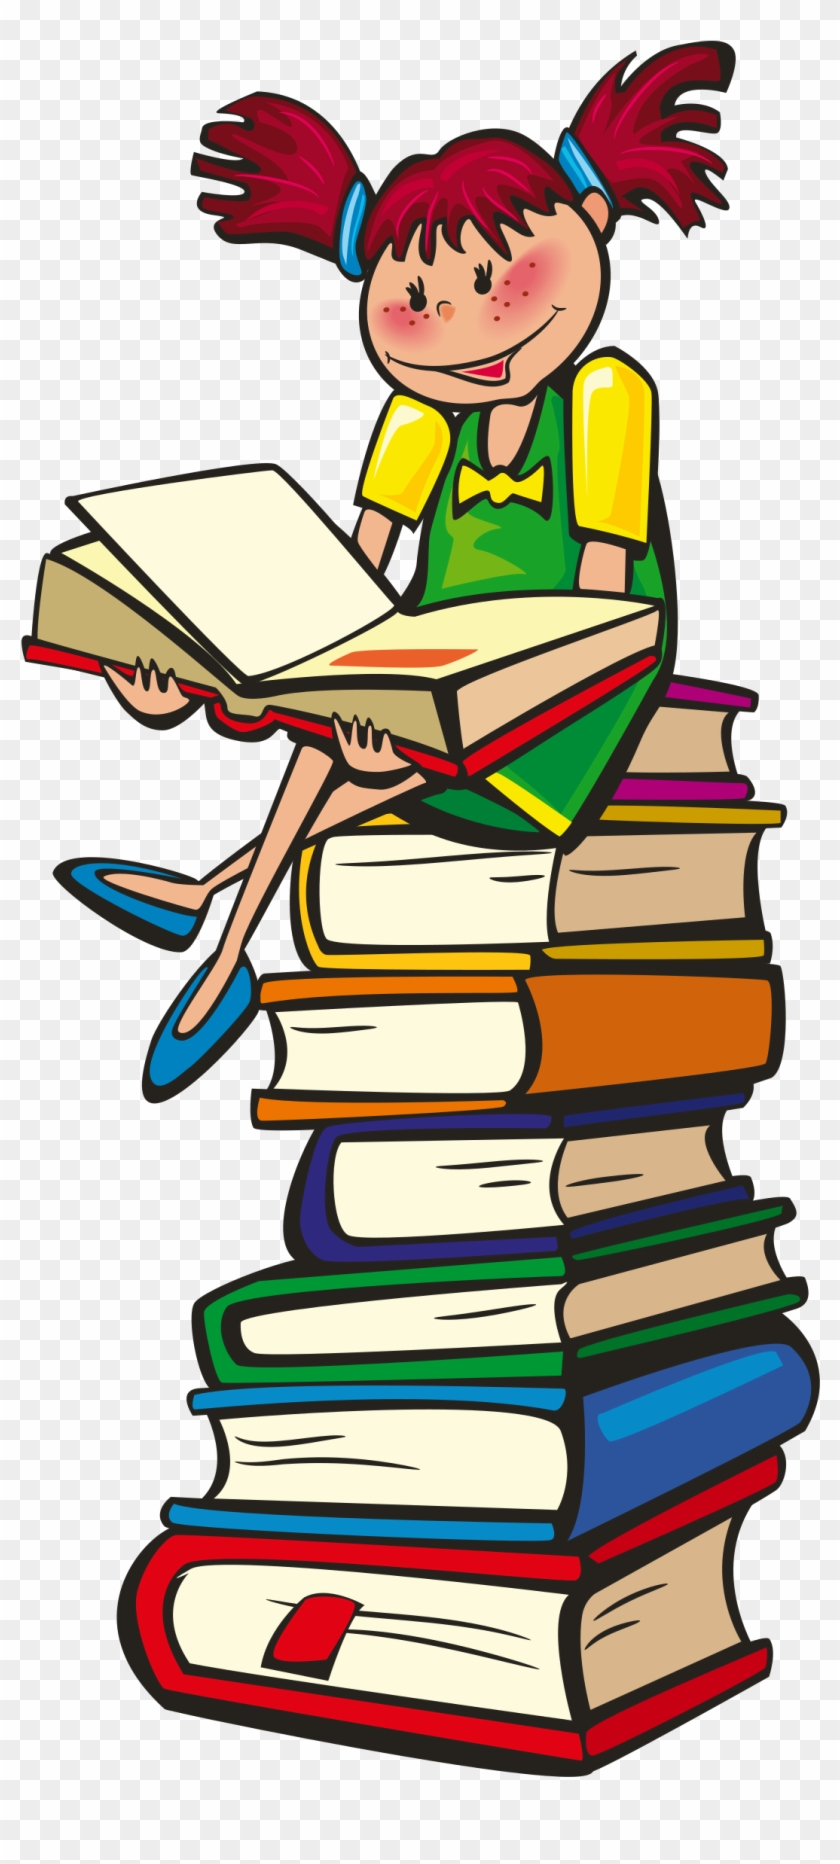 Big Image - Reading Book Clipart #2515